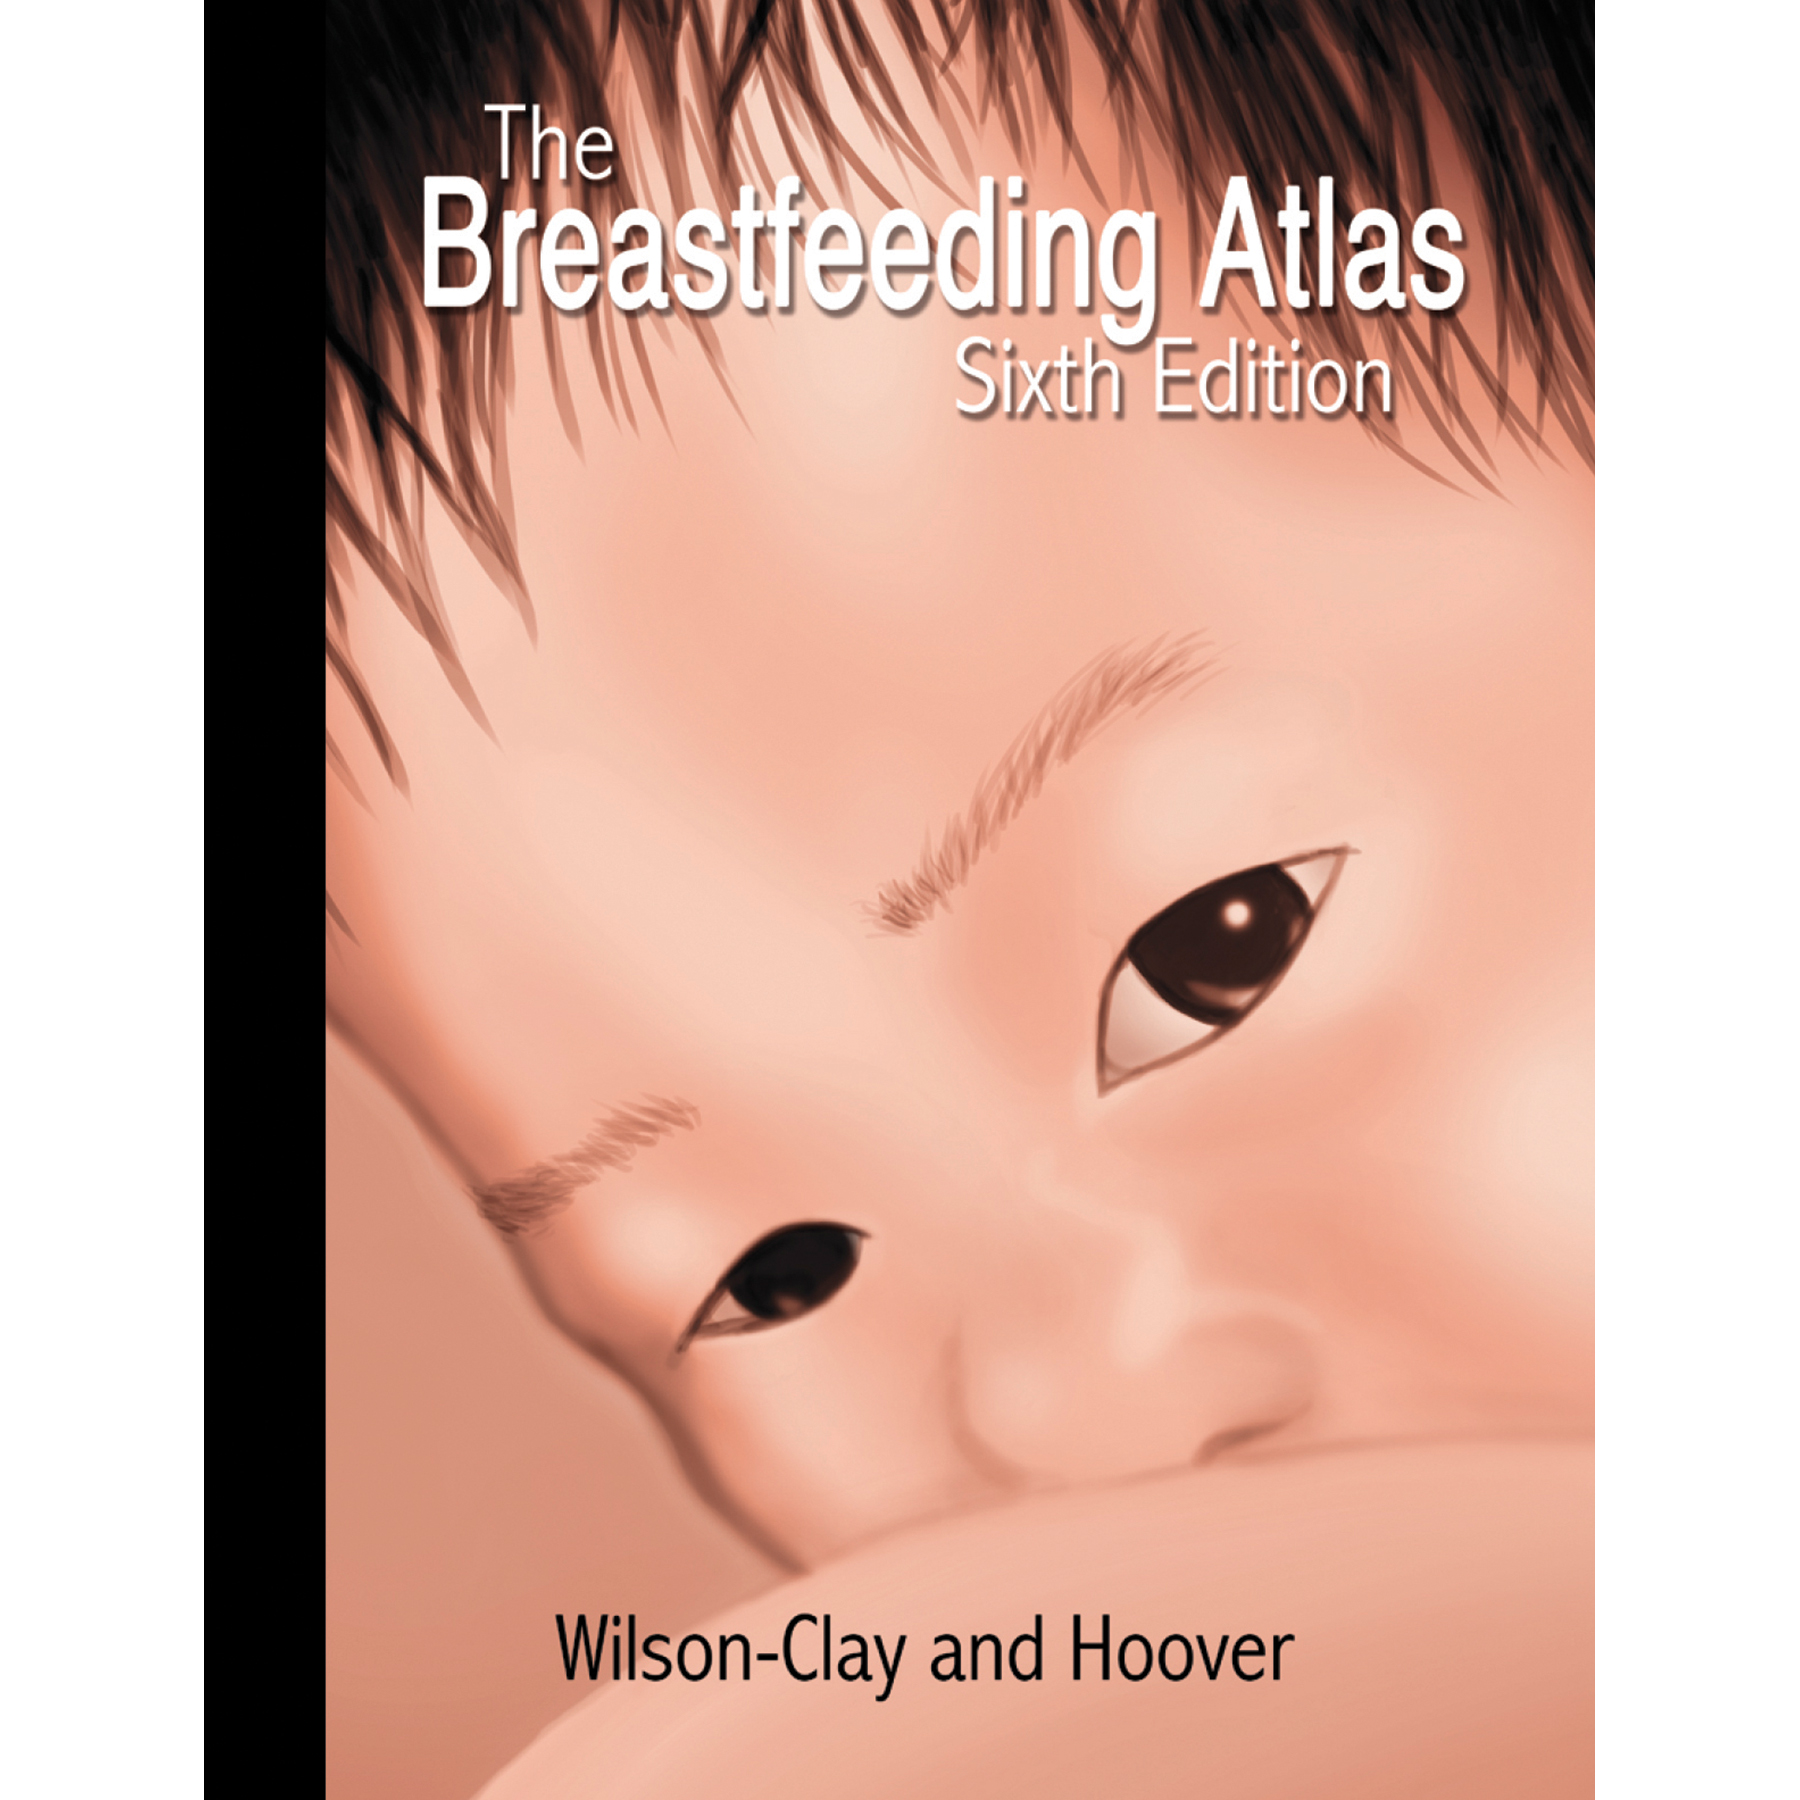 The Breastfeeding Atlas Book 6th edition, closeup image of Asian baby breastfeeding, 400 photos, Childbirth Graphics, 50021